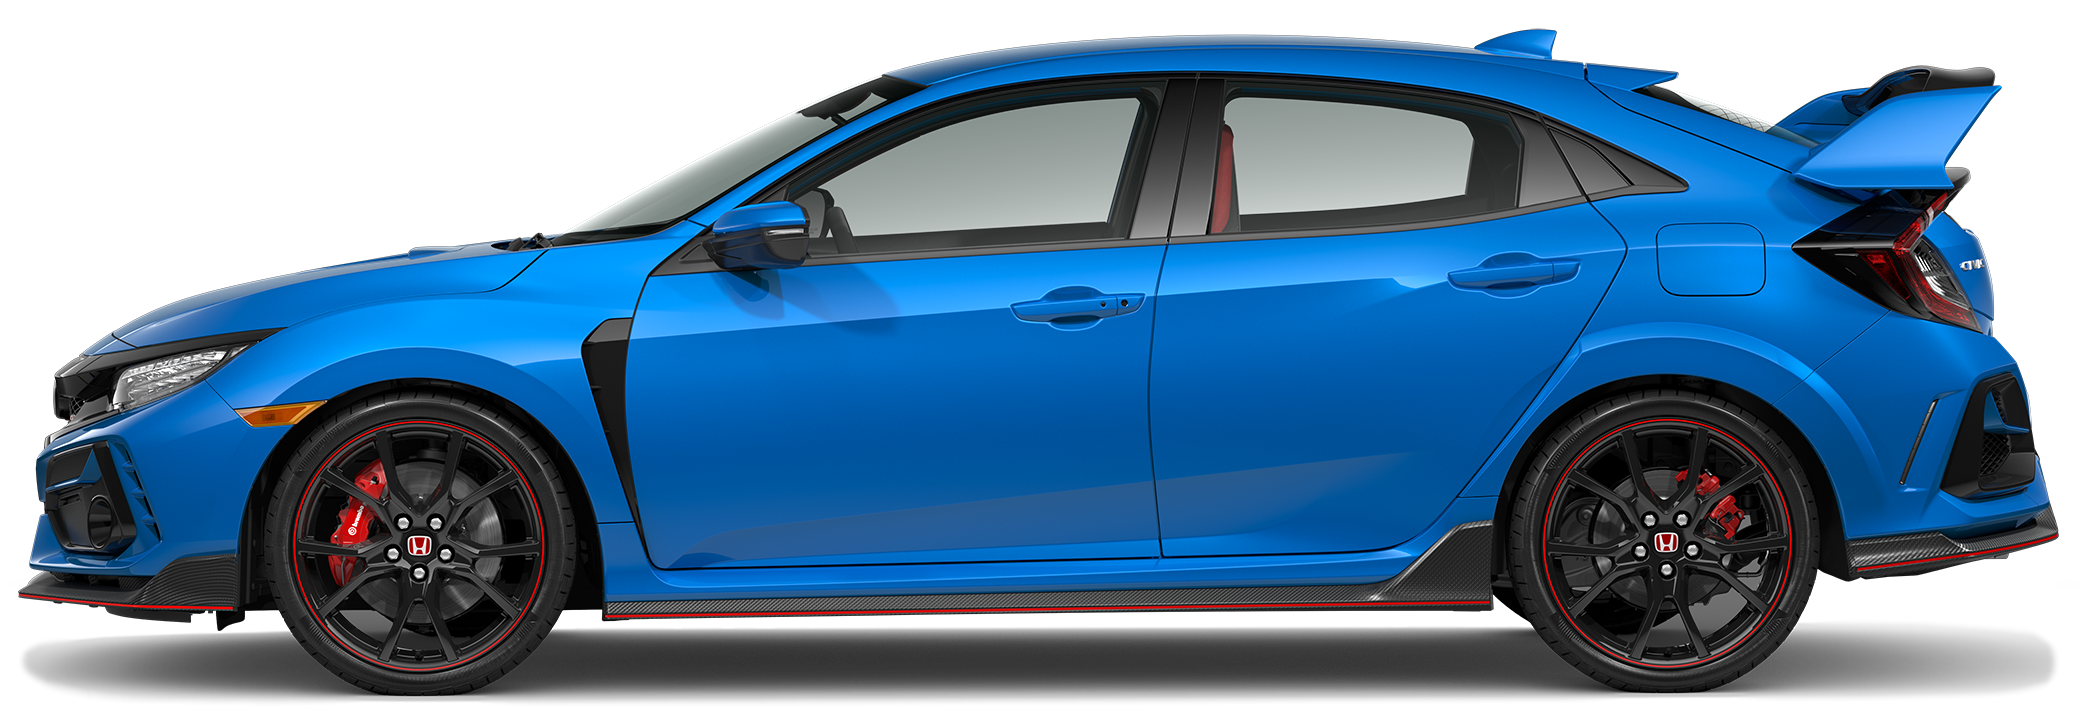 2020 Honda Civic Type R Hatchback Touring